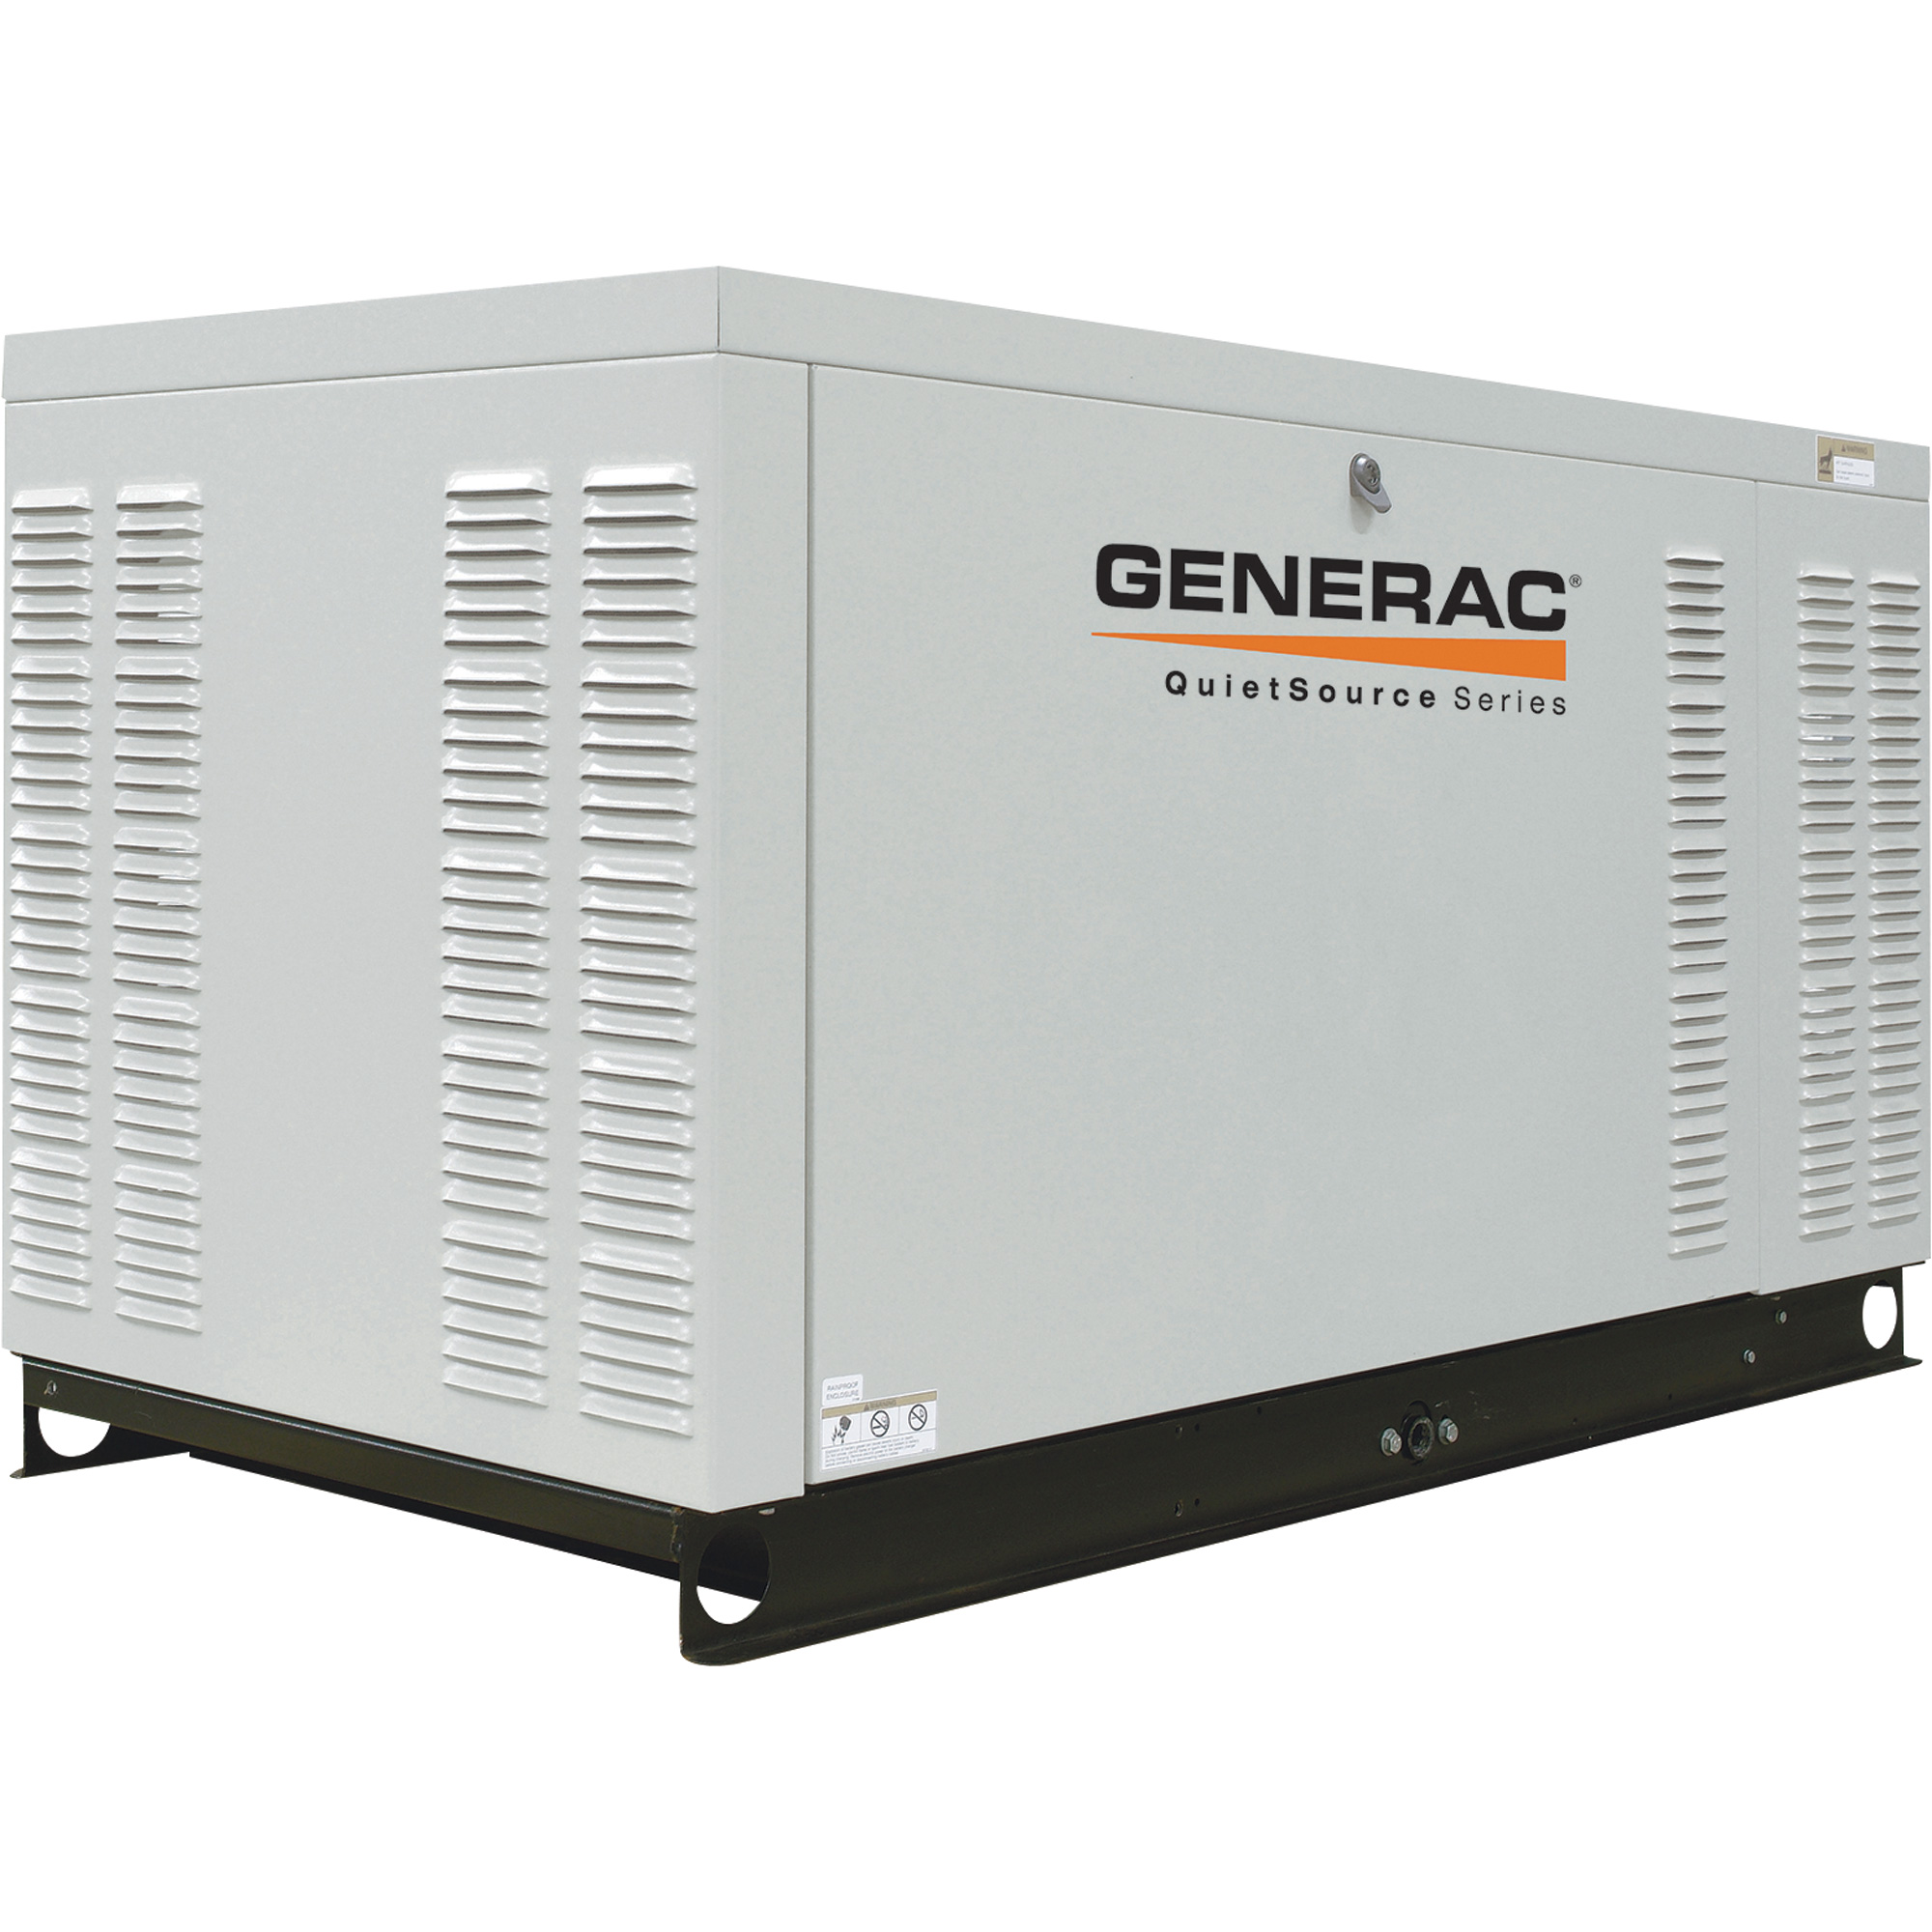 Generac QuietSource automatic gaseous generators are built with low-speed liquid-cooled engines for extra-quiet operation.